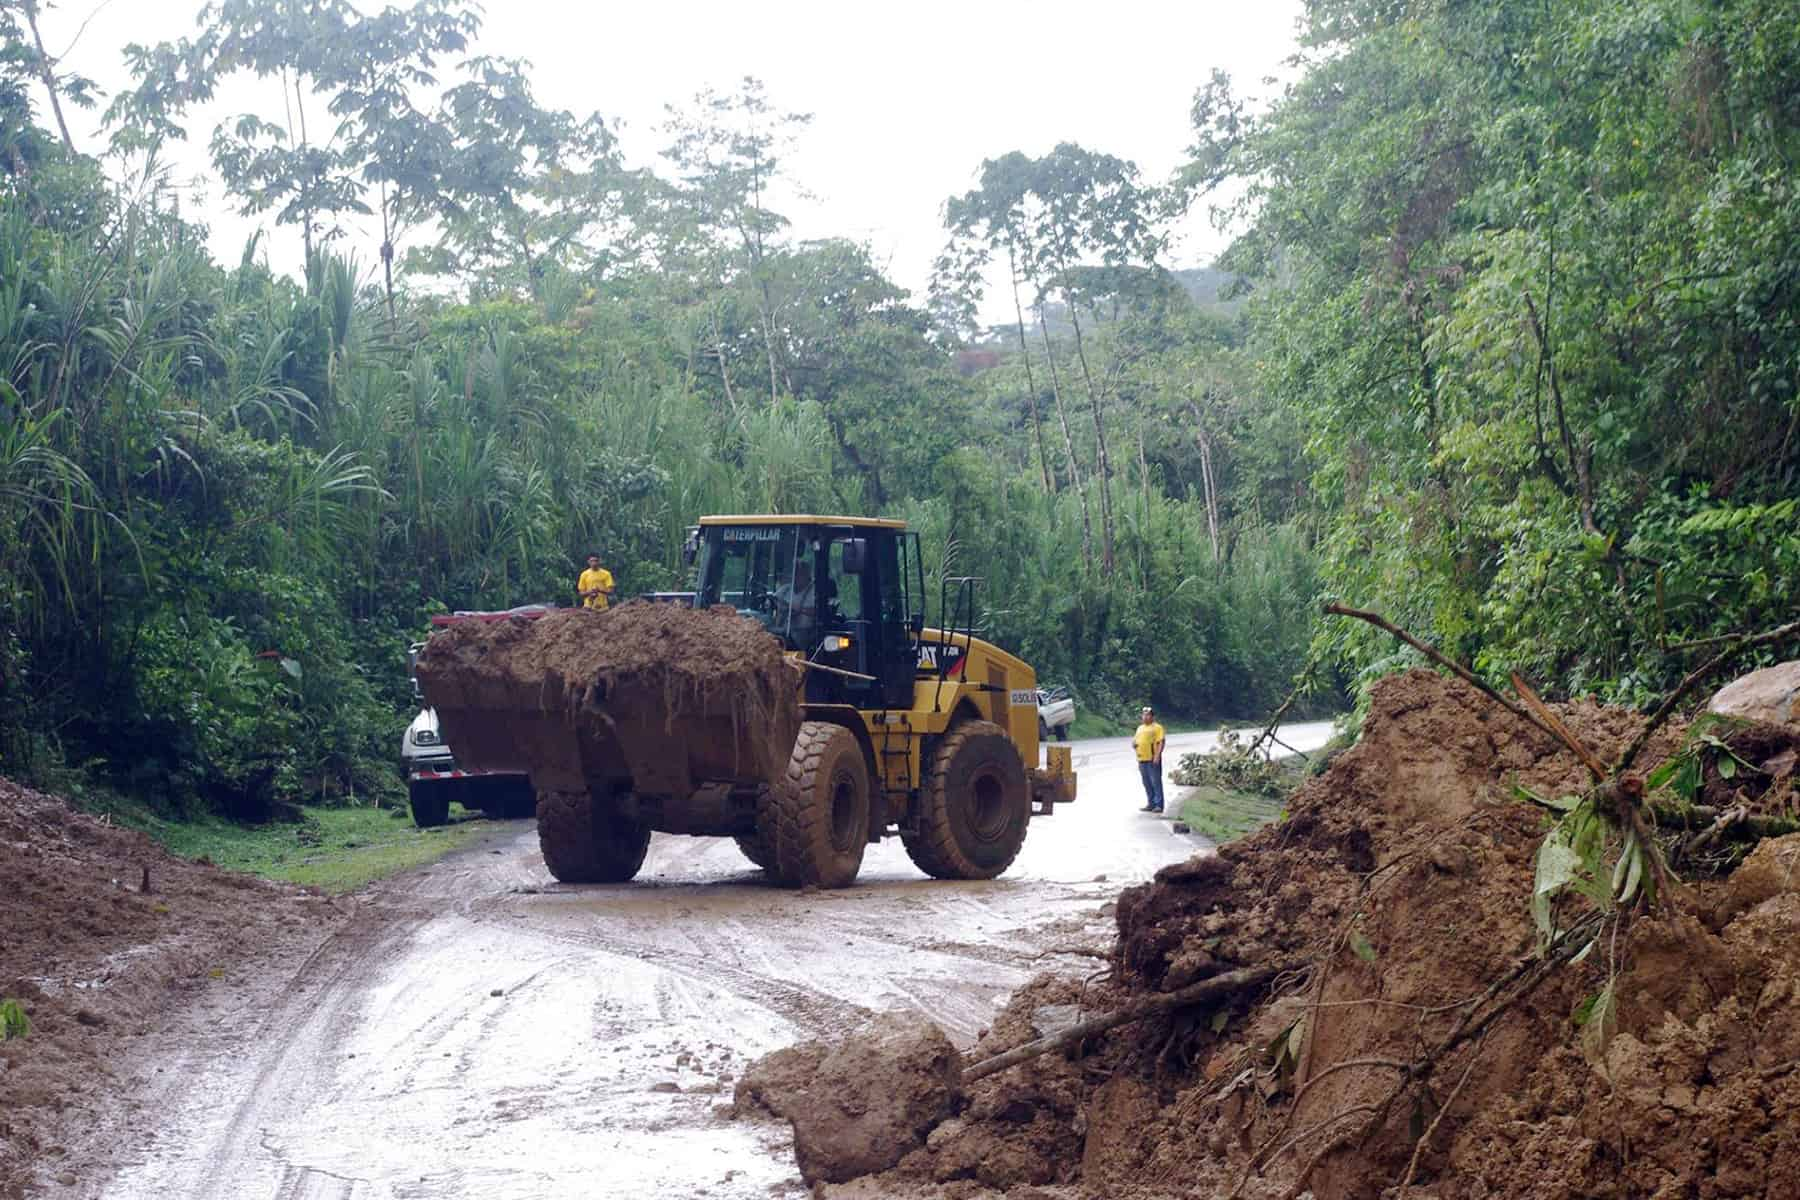 A tractor removing dirt from Route 32 between San José and Limón.